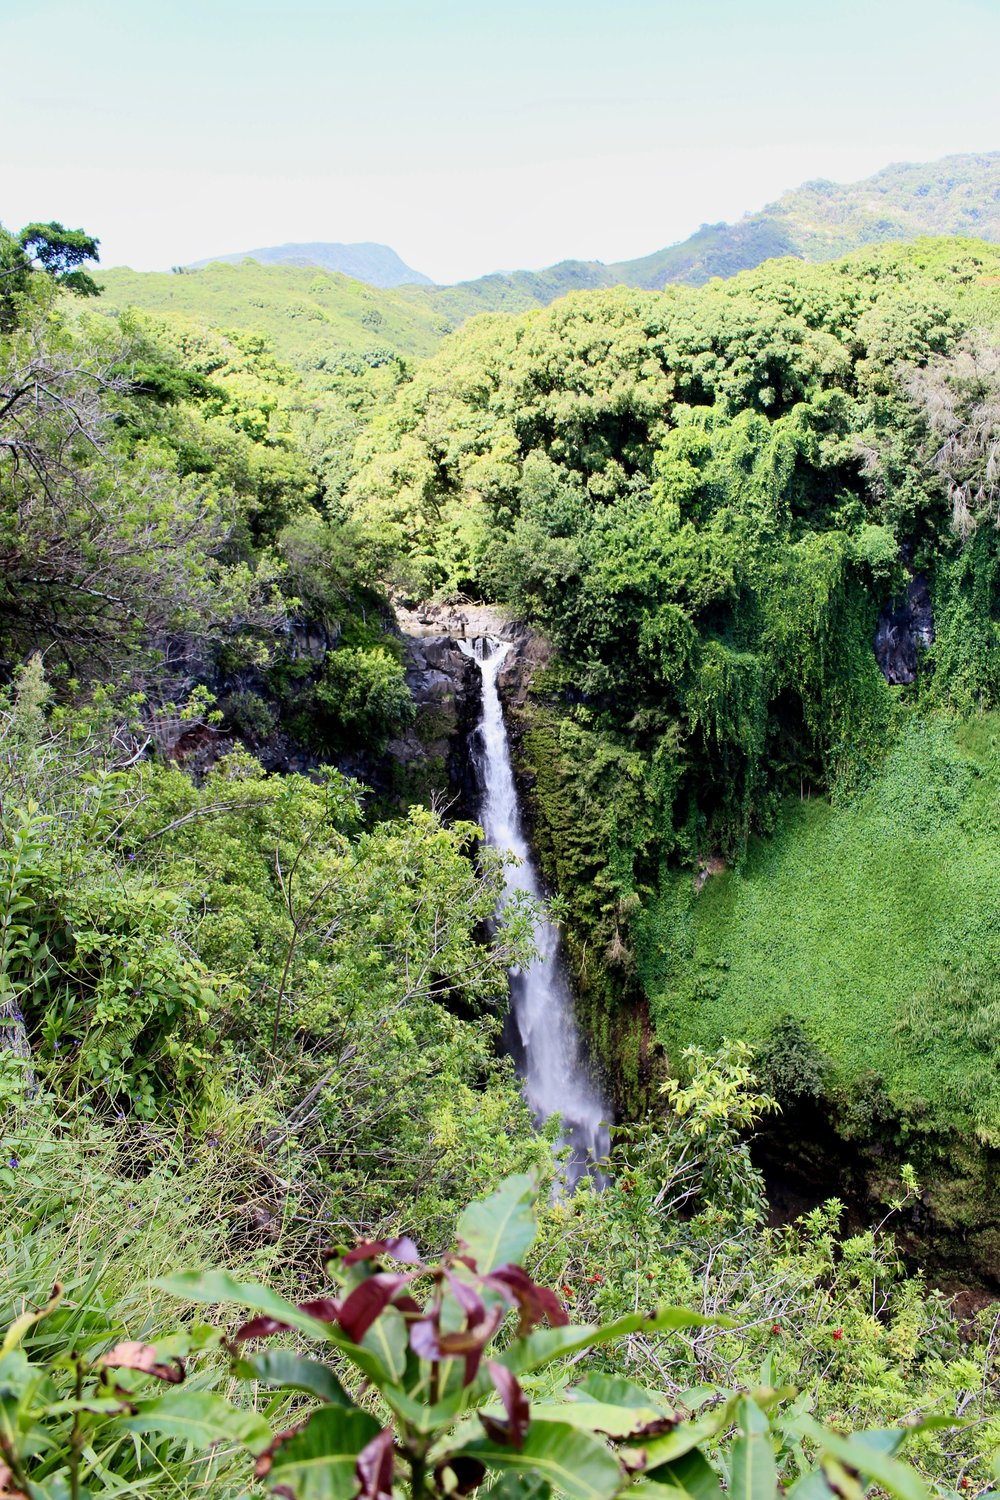 One of the many waterfalls on the road to Hana.